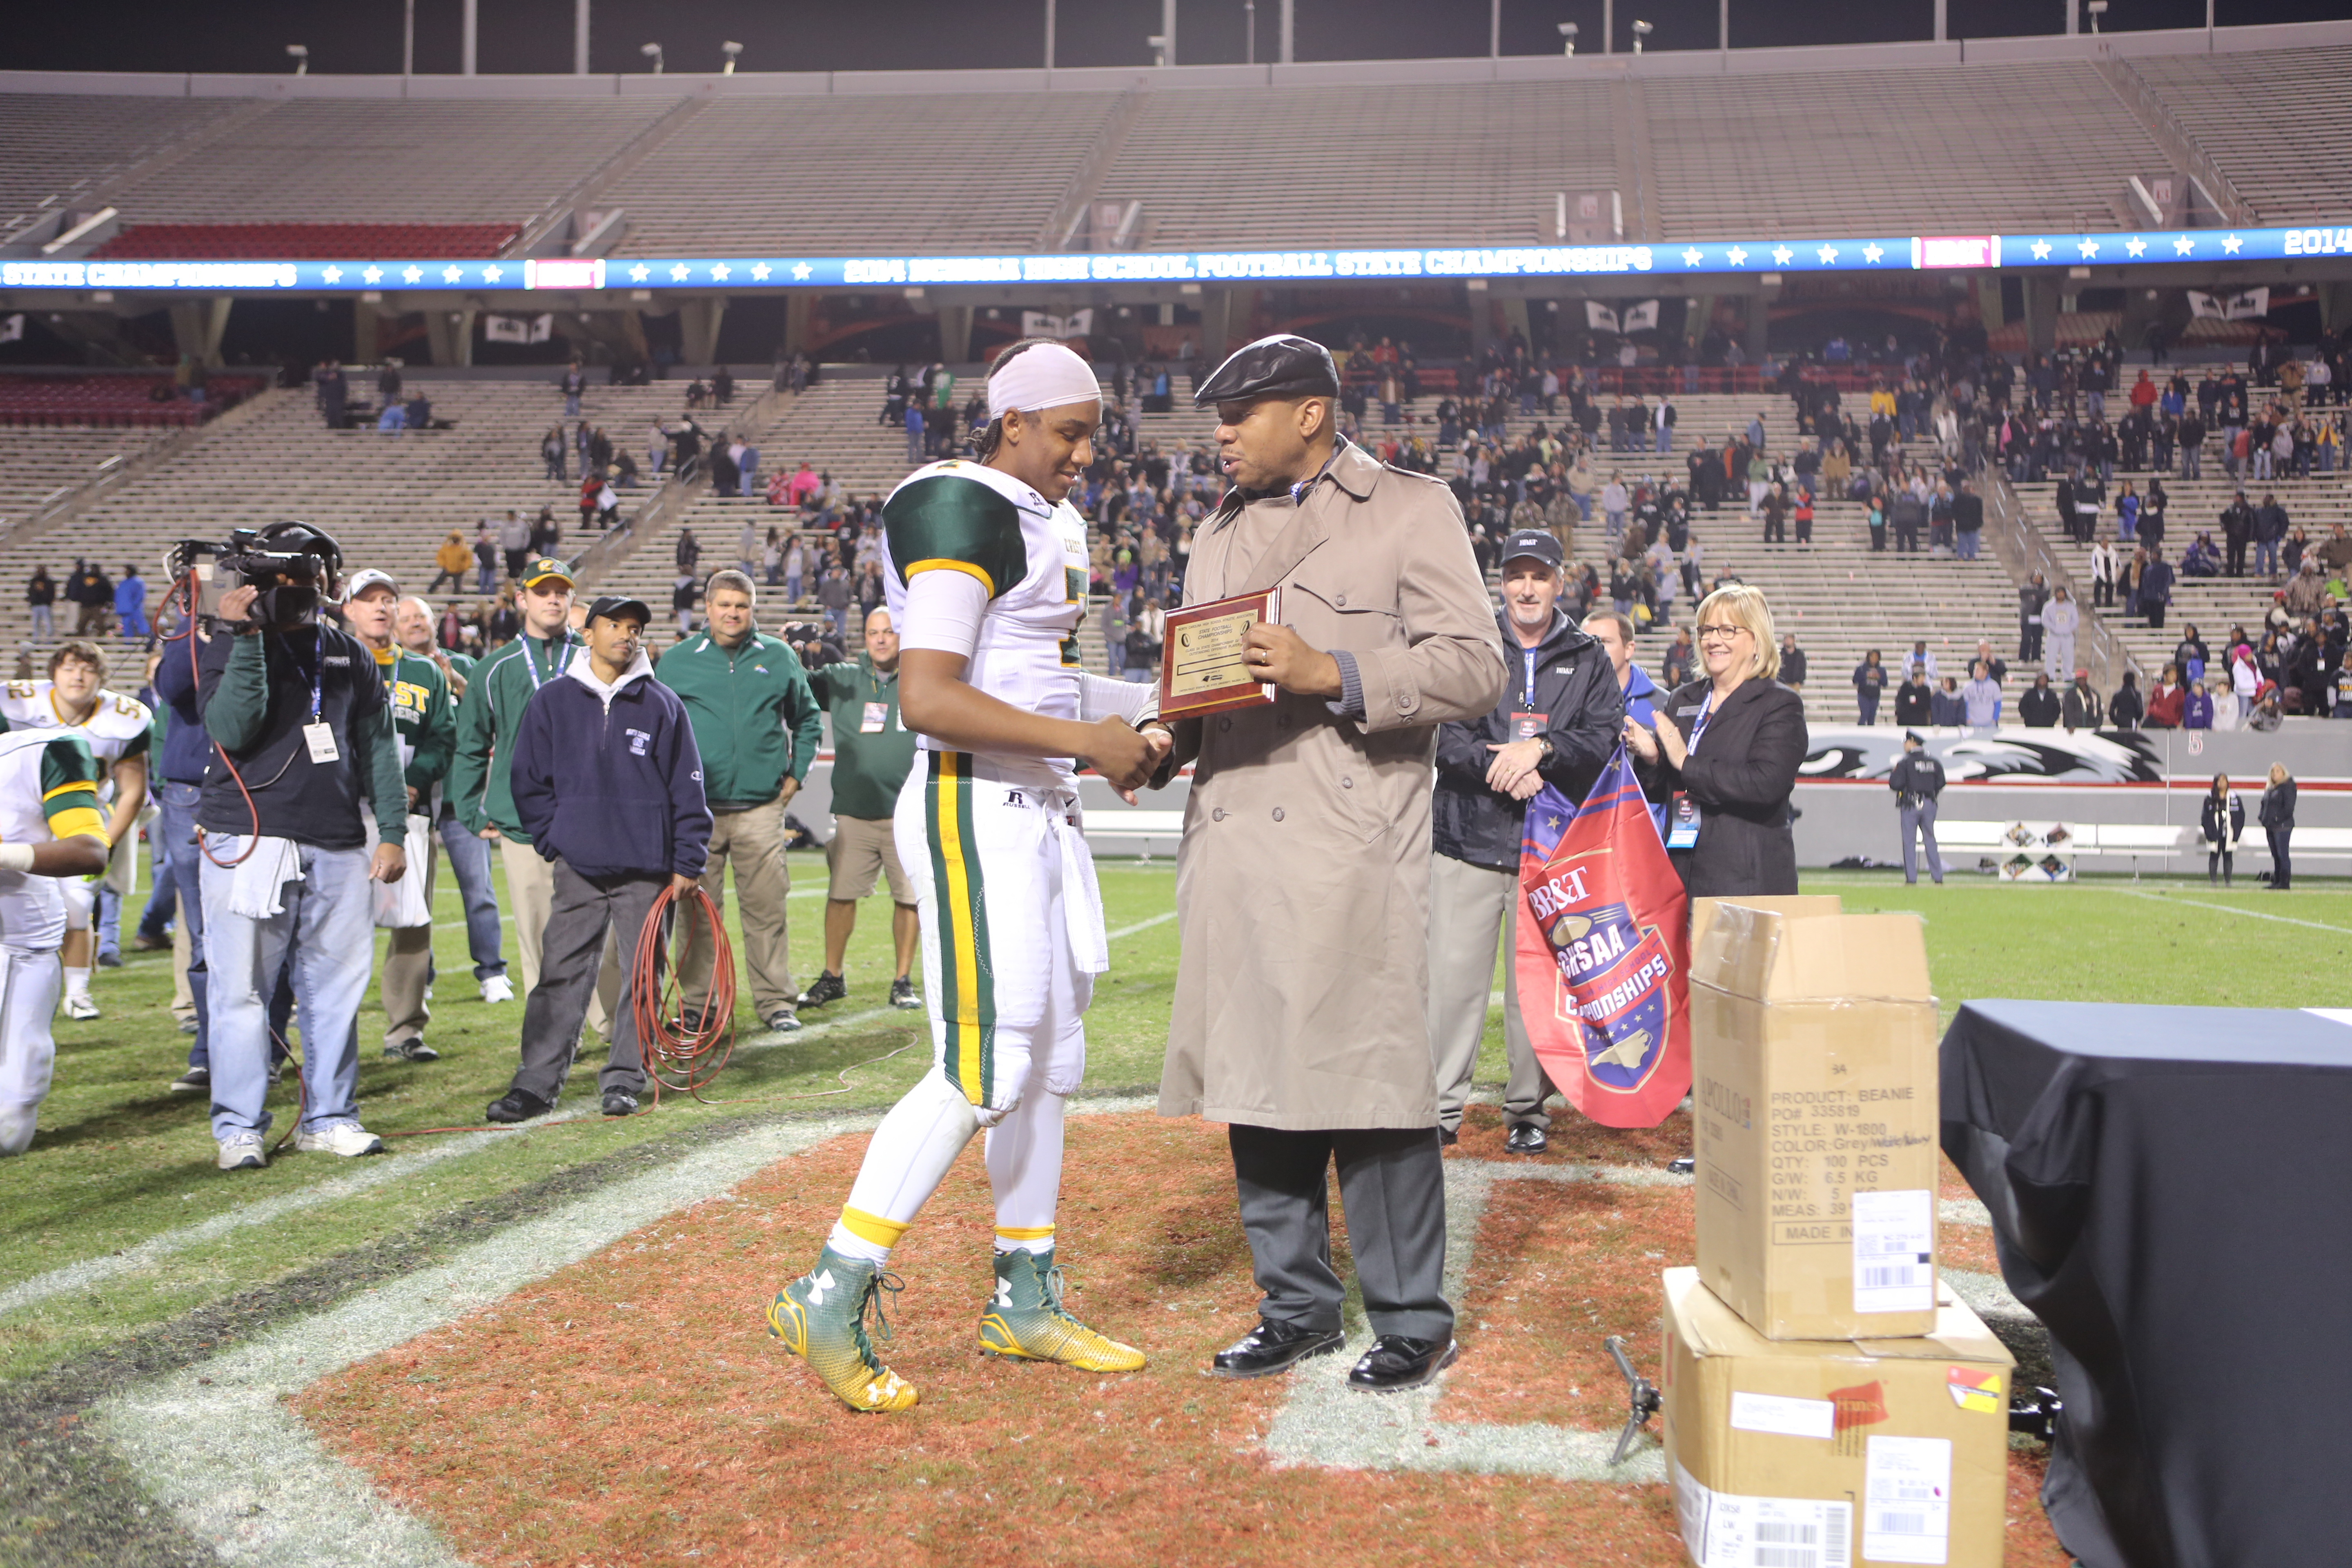 3A State Championship Most Outstanding Offensive Player